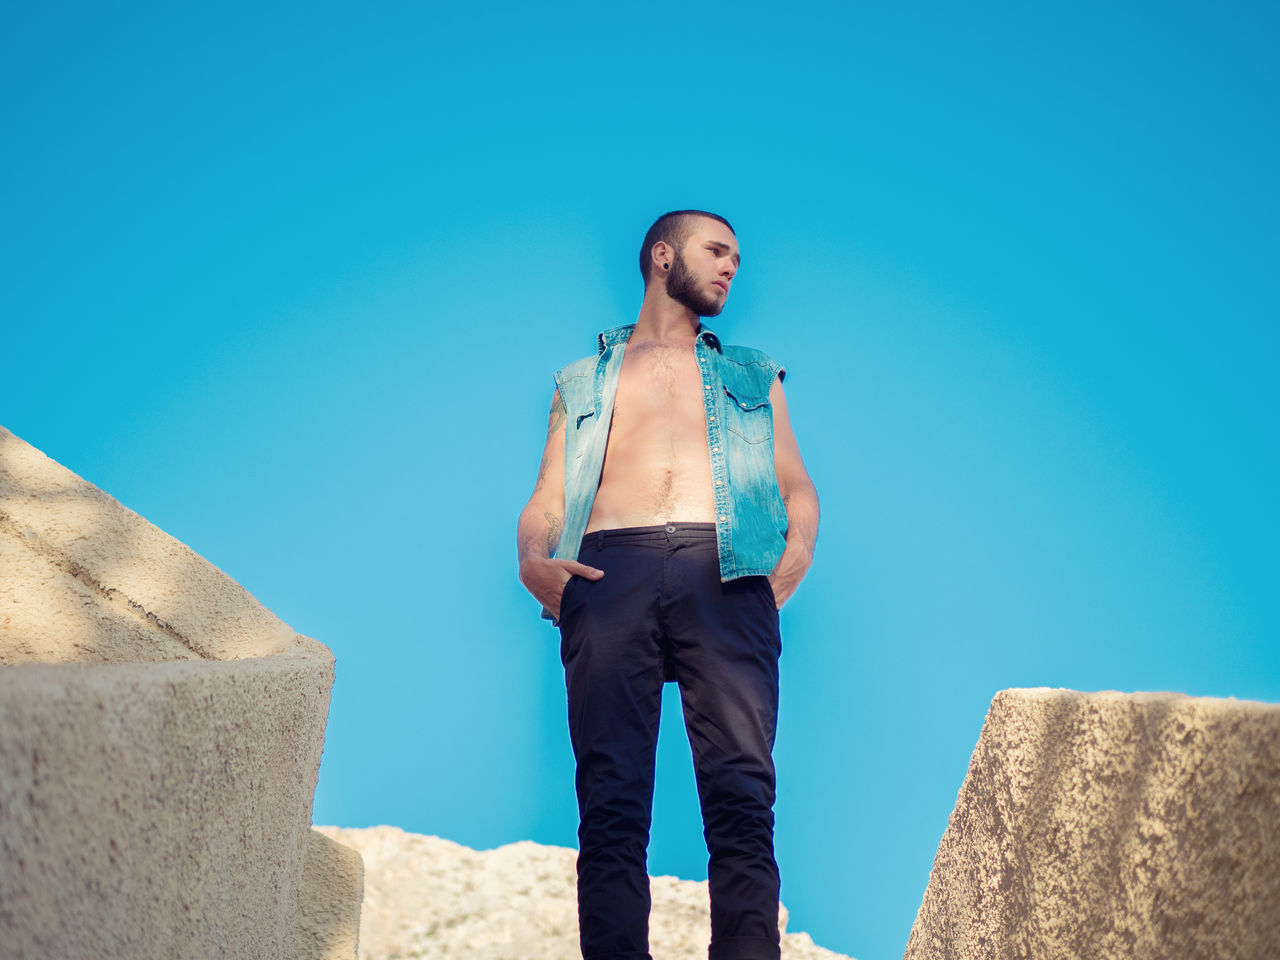 real people, young adult, leisure activity, young men, one person, lifestyles, front view, standing, casual clothing, outdoors, mid adult men, full length, low angle view, blue, day, young women, shirtless, clear sky, architecture, sky, nature